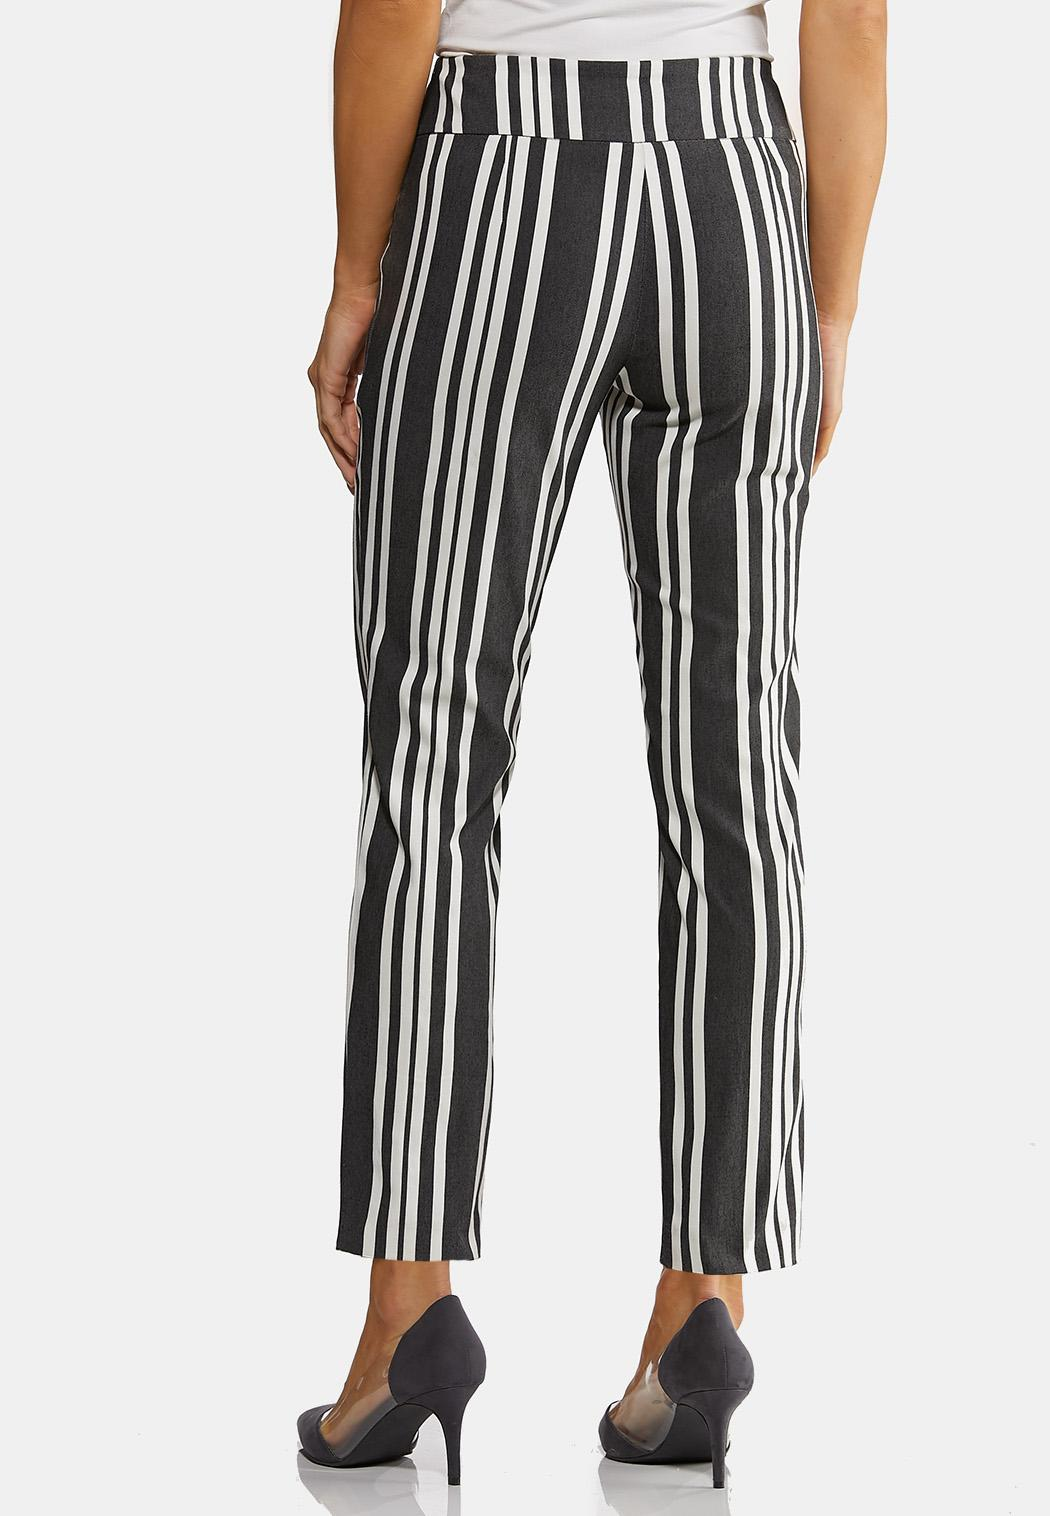 Striped Bengaline Pants (Item #44169772)